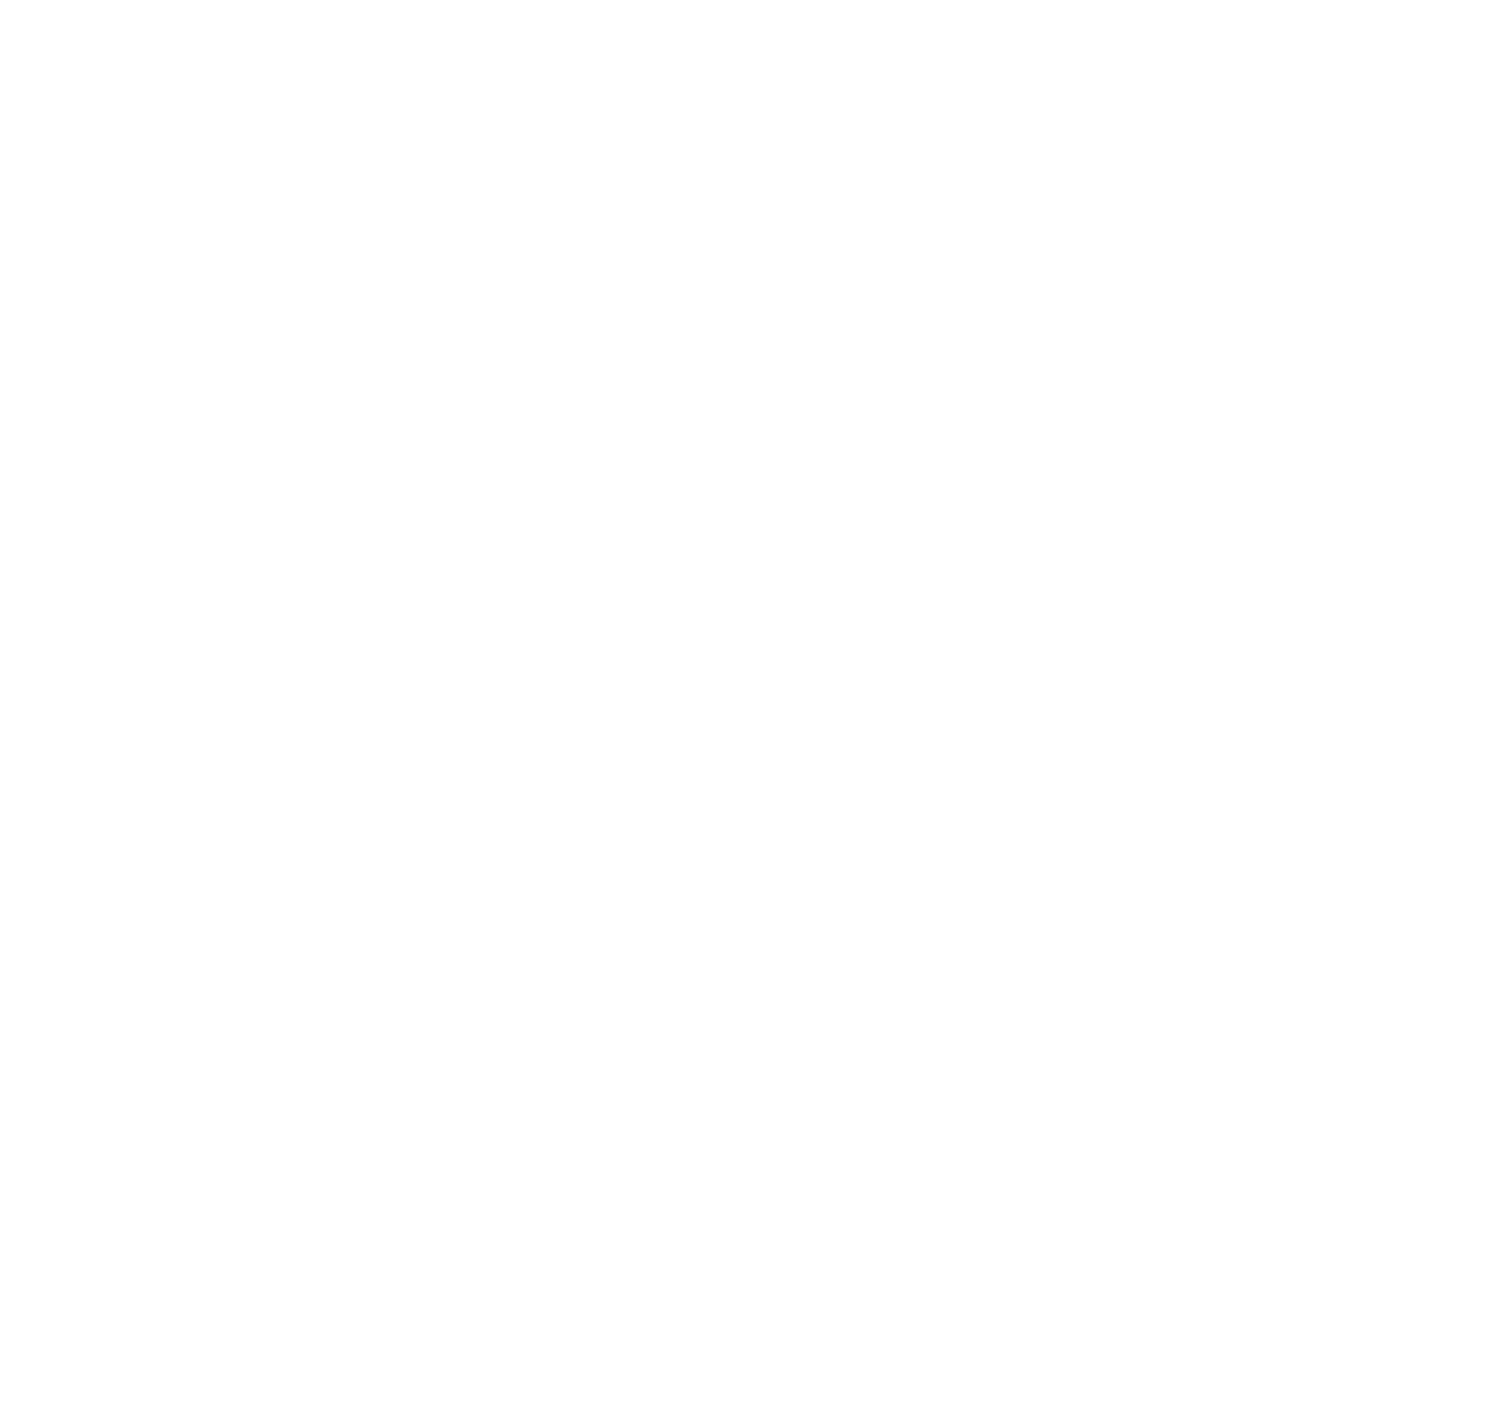 ClimbFit Kirrawee - Best Rock Climbing and Bouldering in Kirrawee